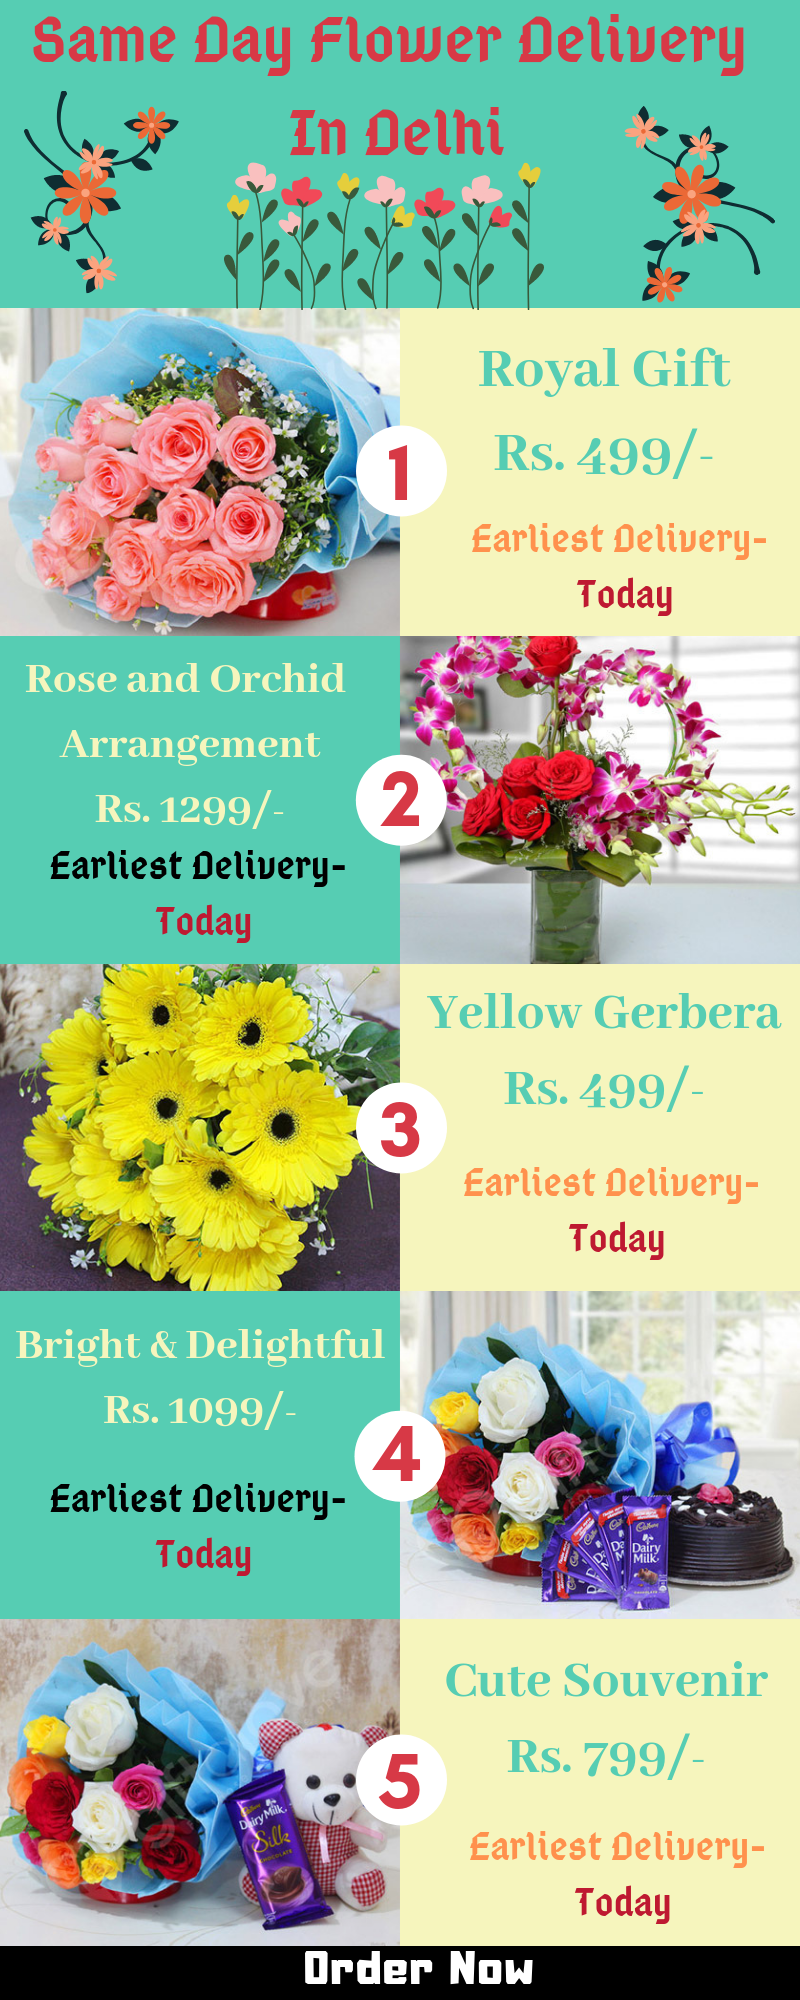 Beautiful Flower Delivery Service On Same Day Delhi